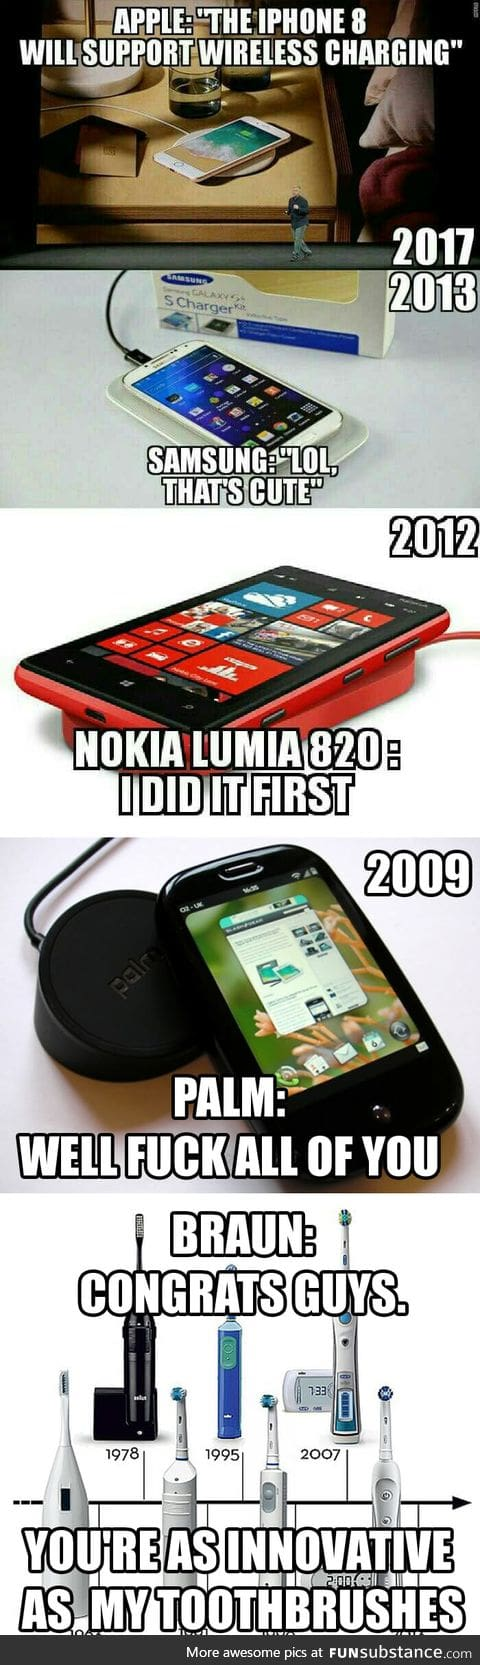 Wireless charging is old